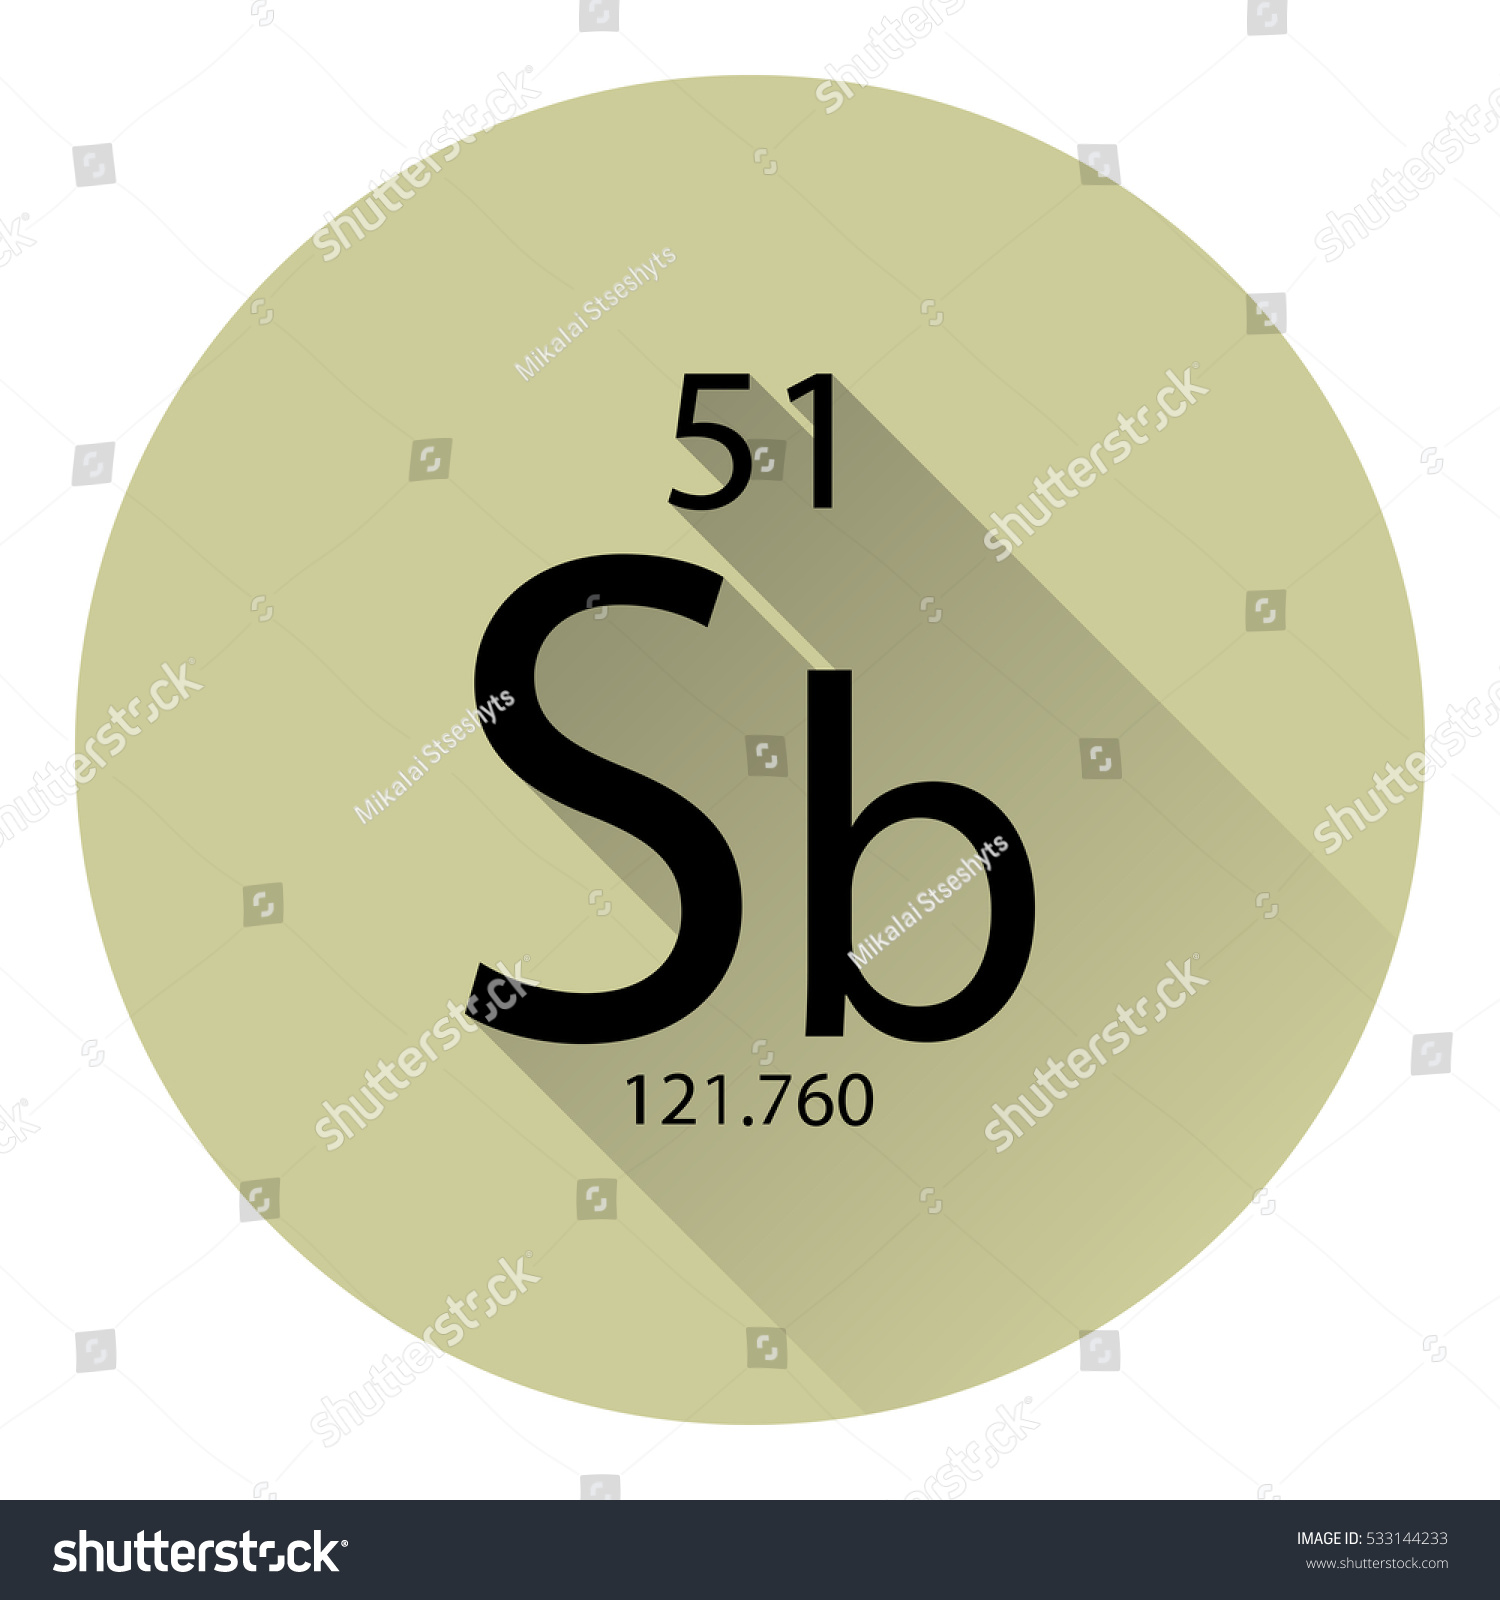 Periodic table element antimony basic properties stock vector the periodic table element antimony with the basic properties flat style with long shadow gamestrikefo Image collections